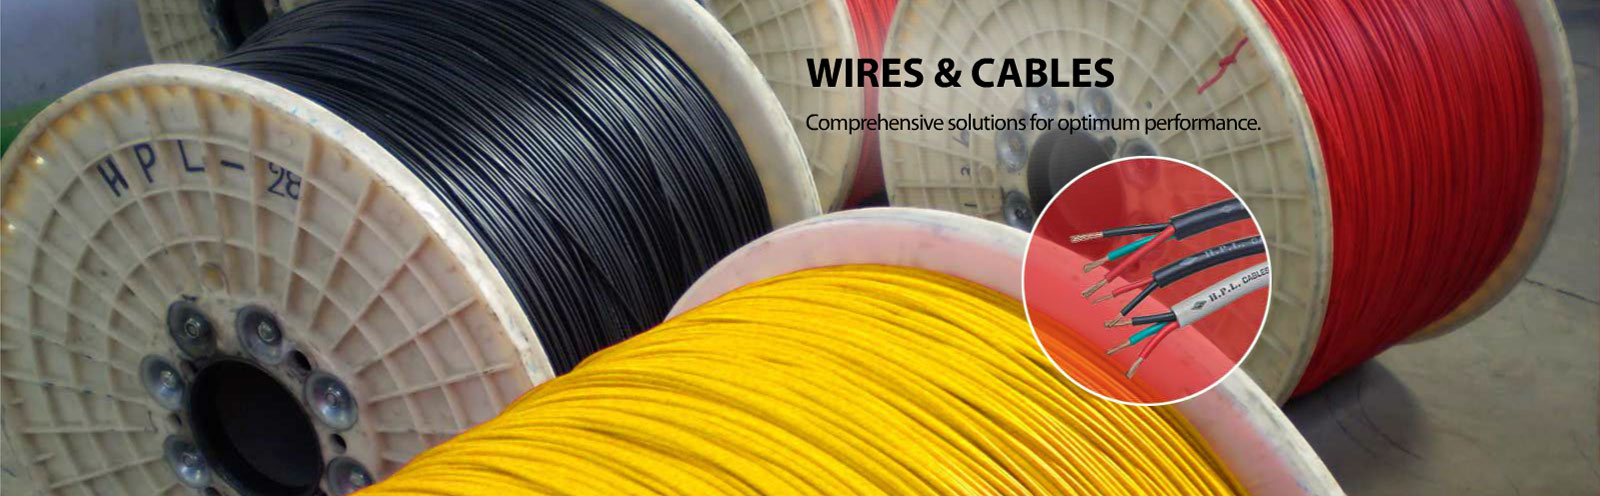 Anand Electric Agency|Wires and Cables|Havells Wires and Cables ...